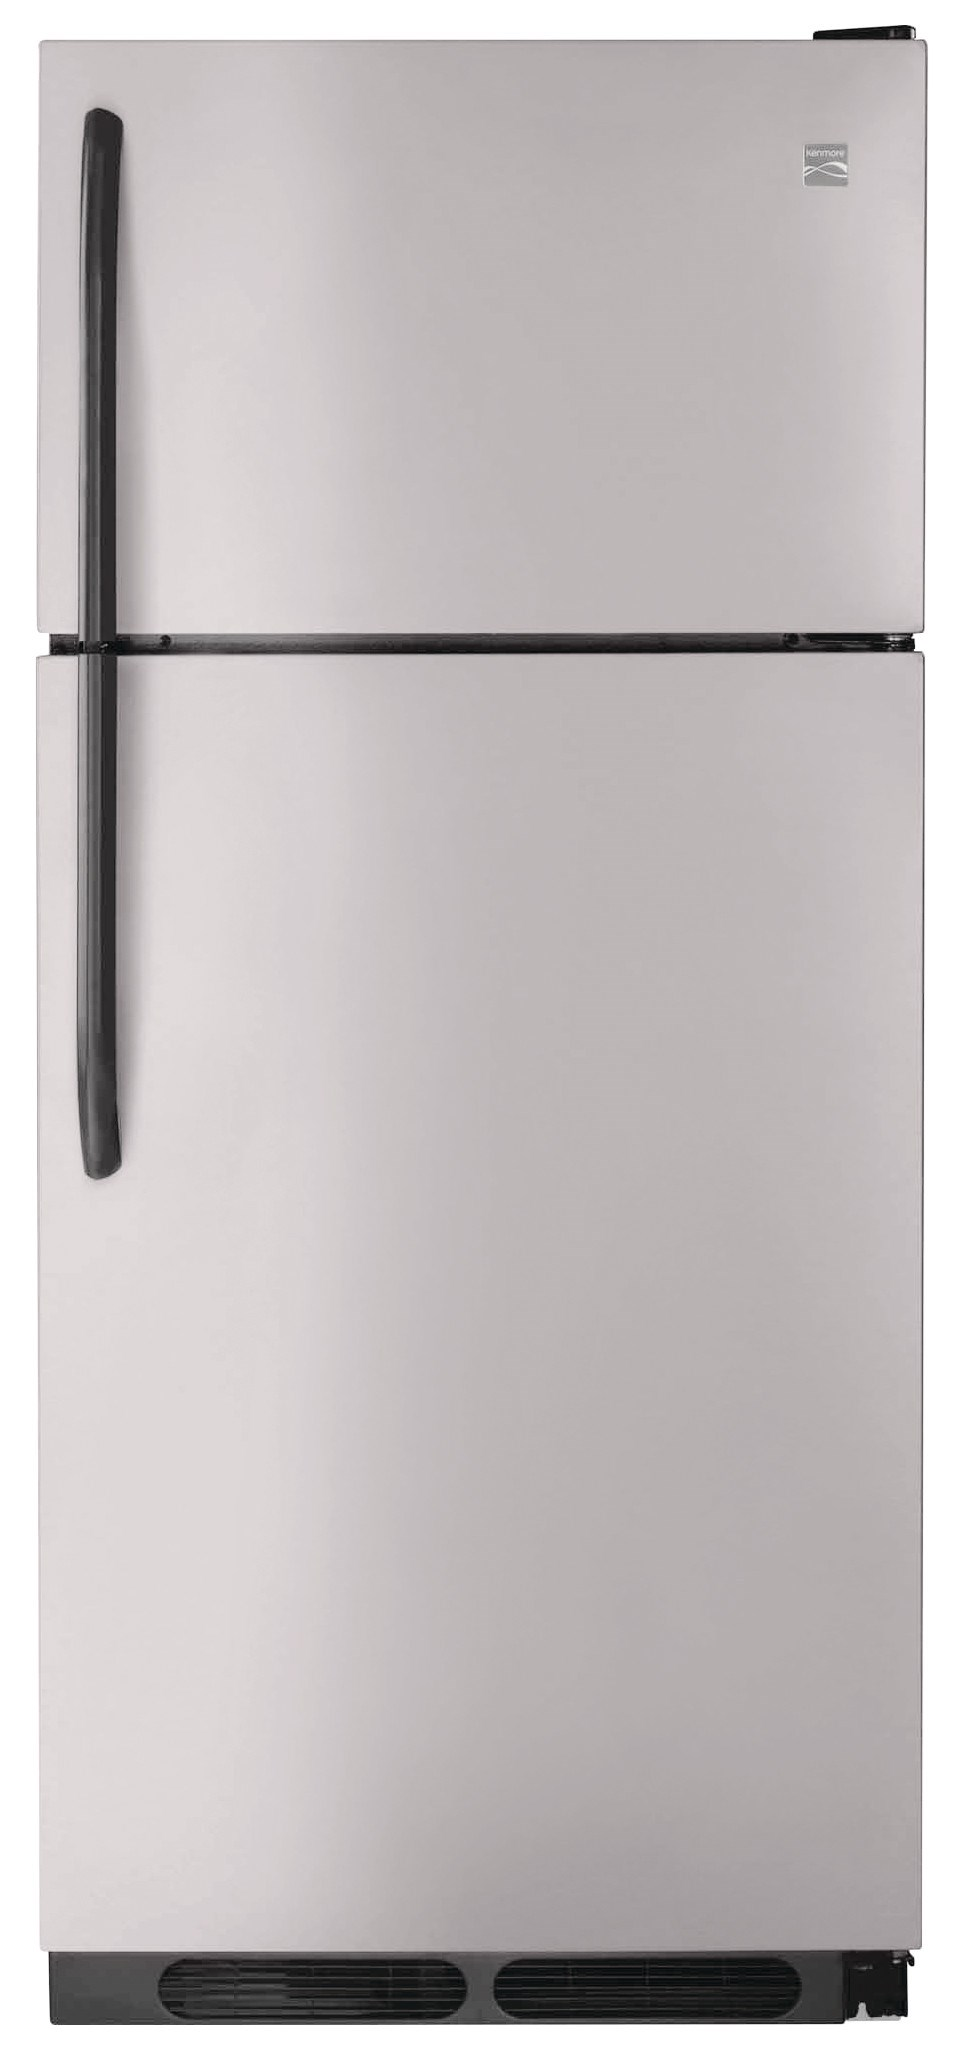 kenmore freezer. kenmore® 16.3 cu. ft. top-freezer refrigerator, stainless kenmore freezer